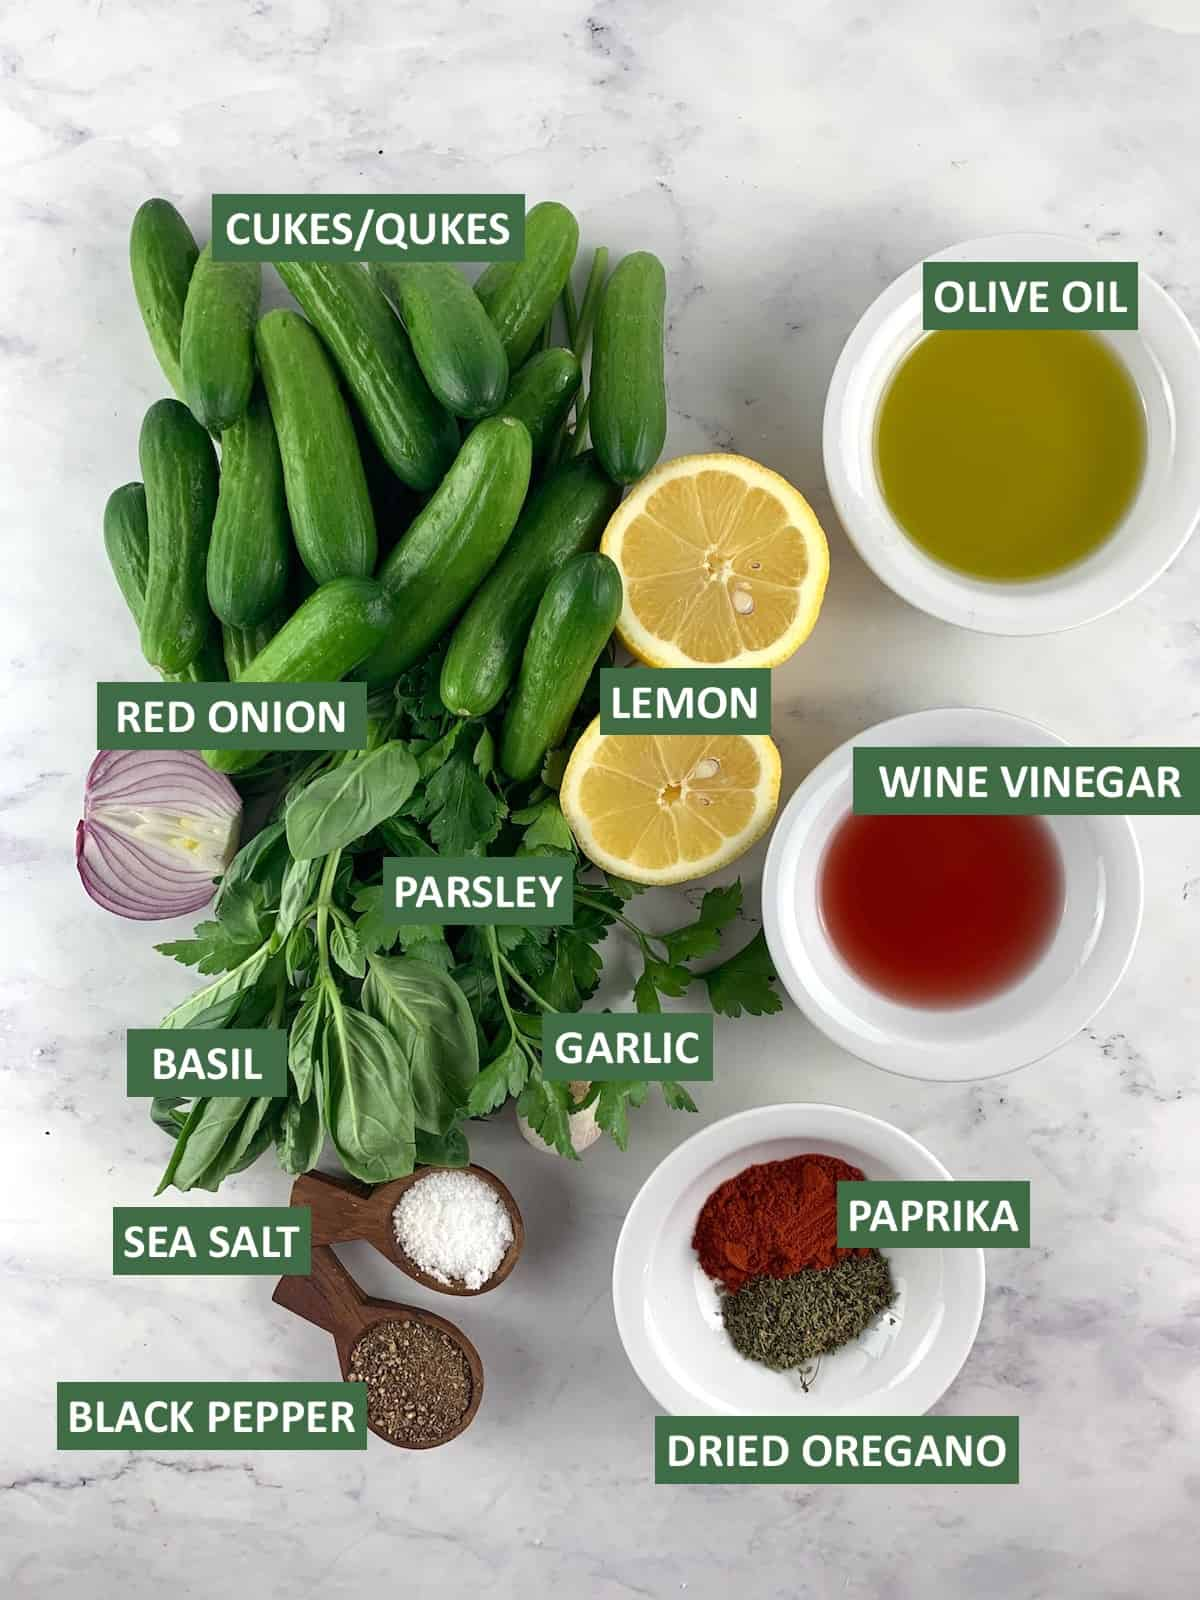 INGREDIENTS NEEDED TO MAKE ITALIAN CUCUMBER SALAD WITH TEXT